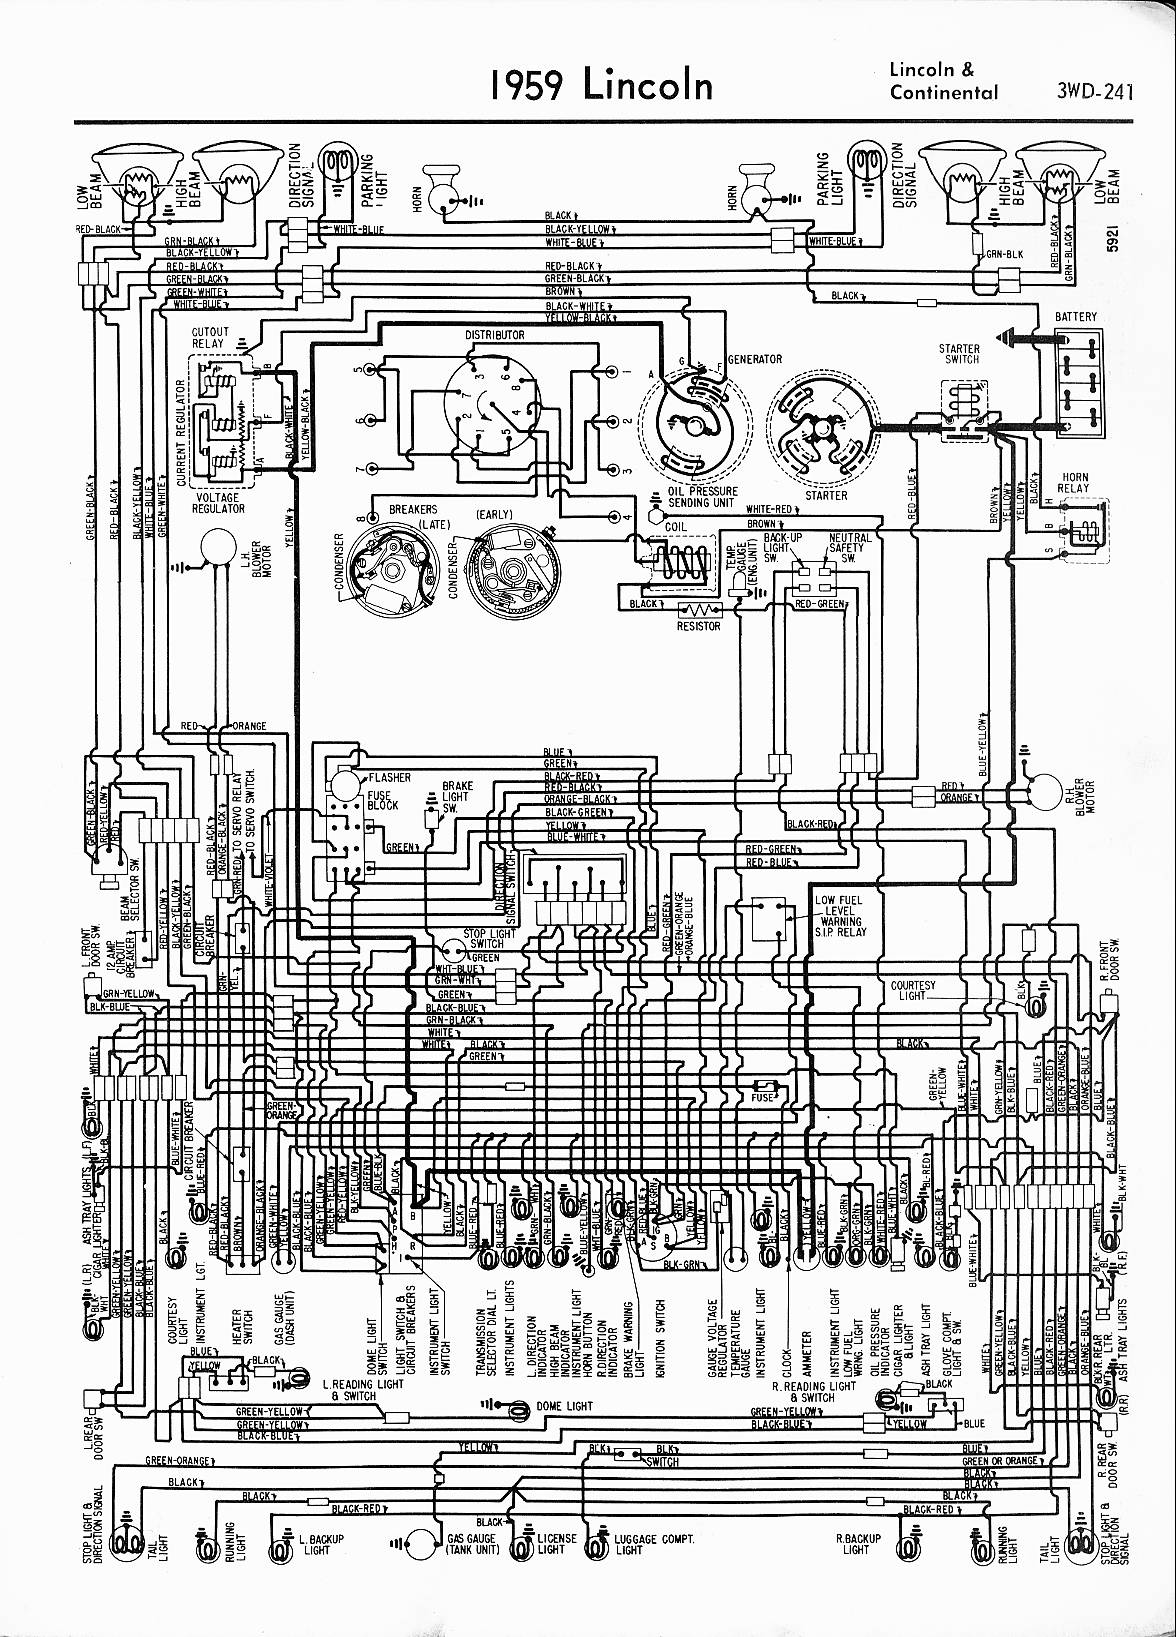 lincoln continental wiring diagram wire center u2022 rh linxglobal co 1969 lincoln mark iii wiring diagram 1969 lincoln continental power window wiring diagram